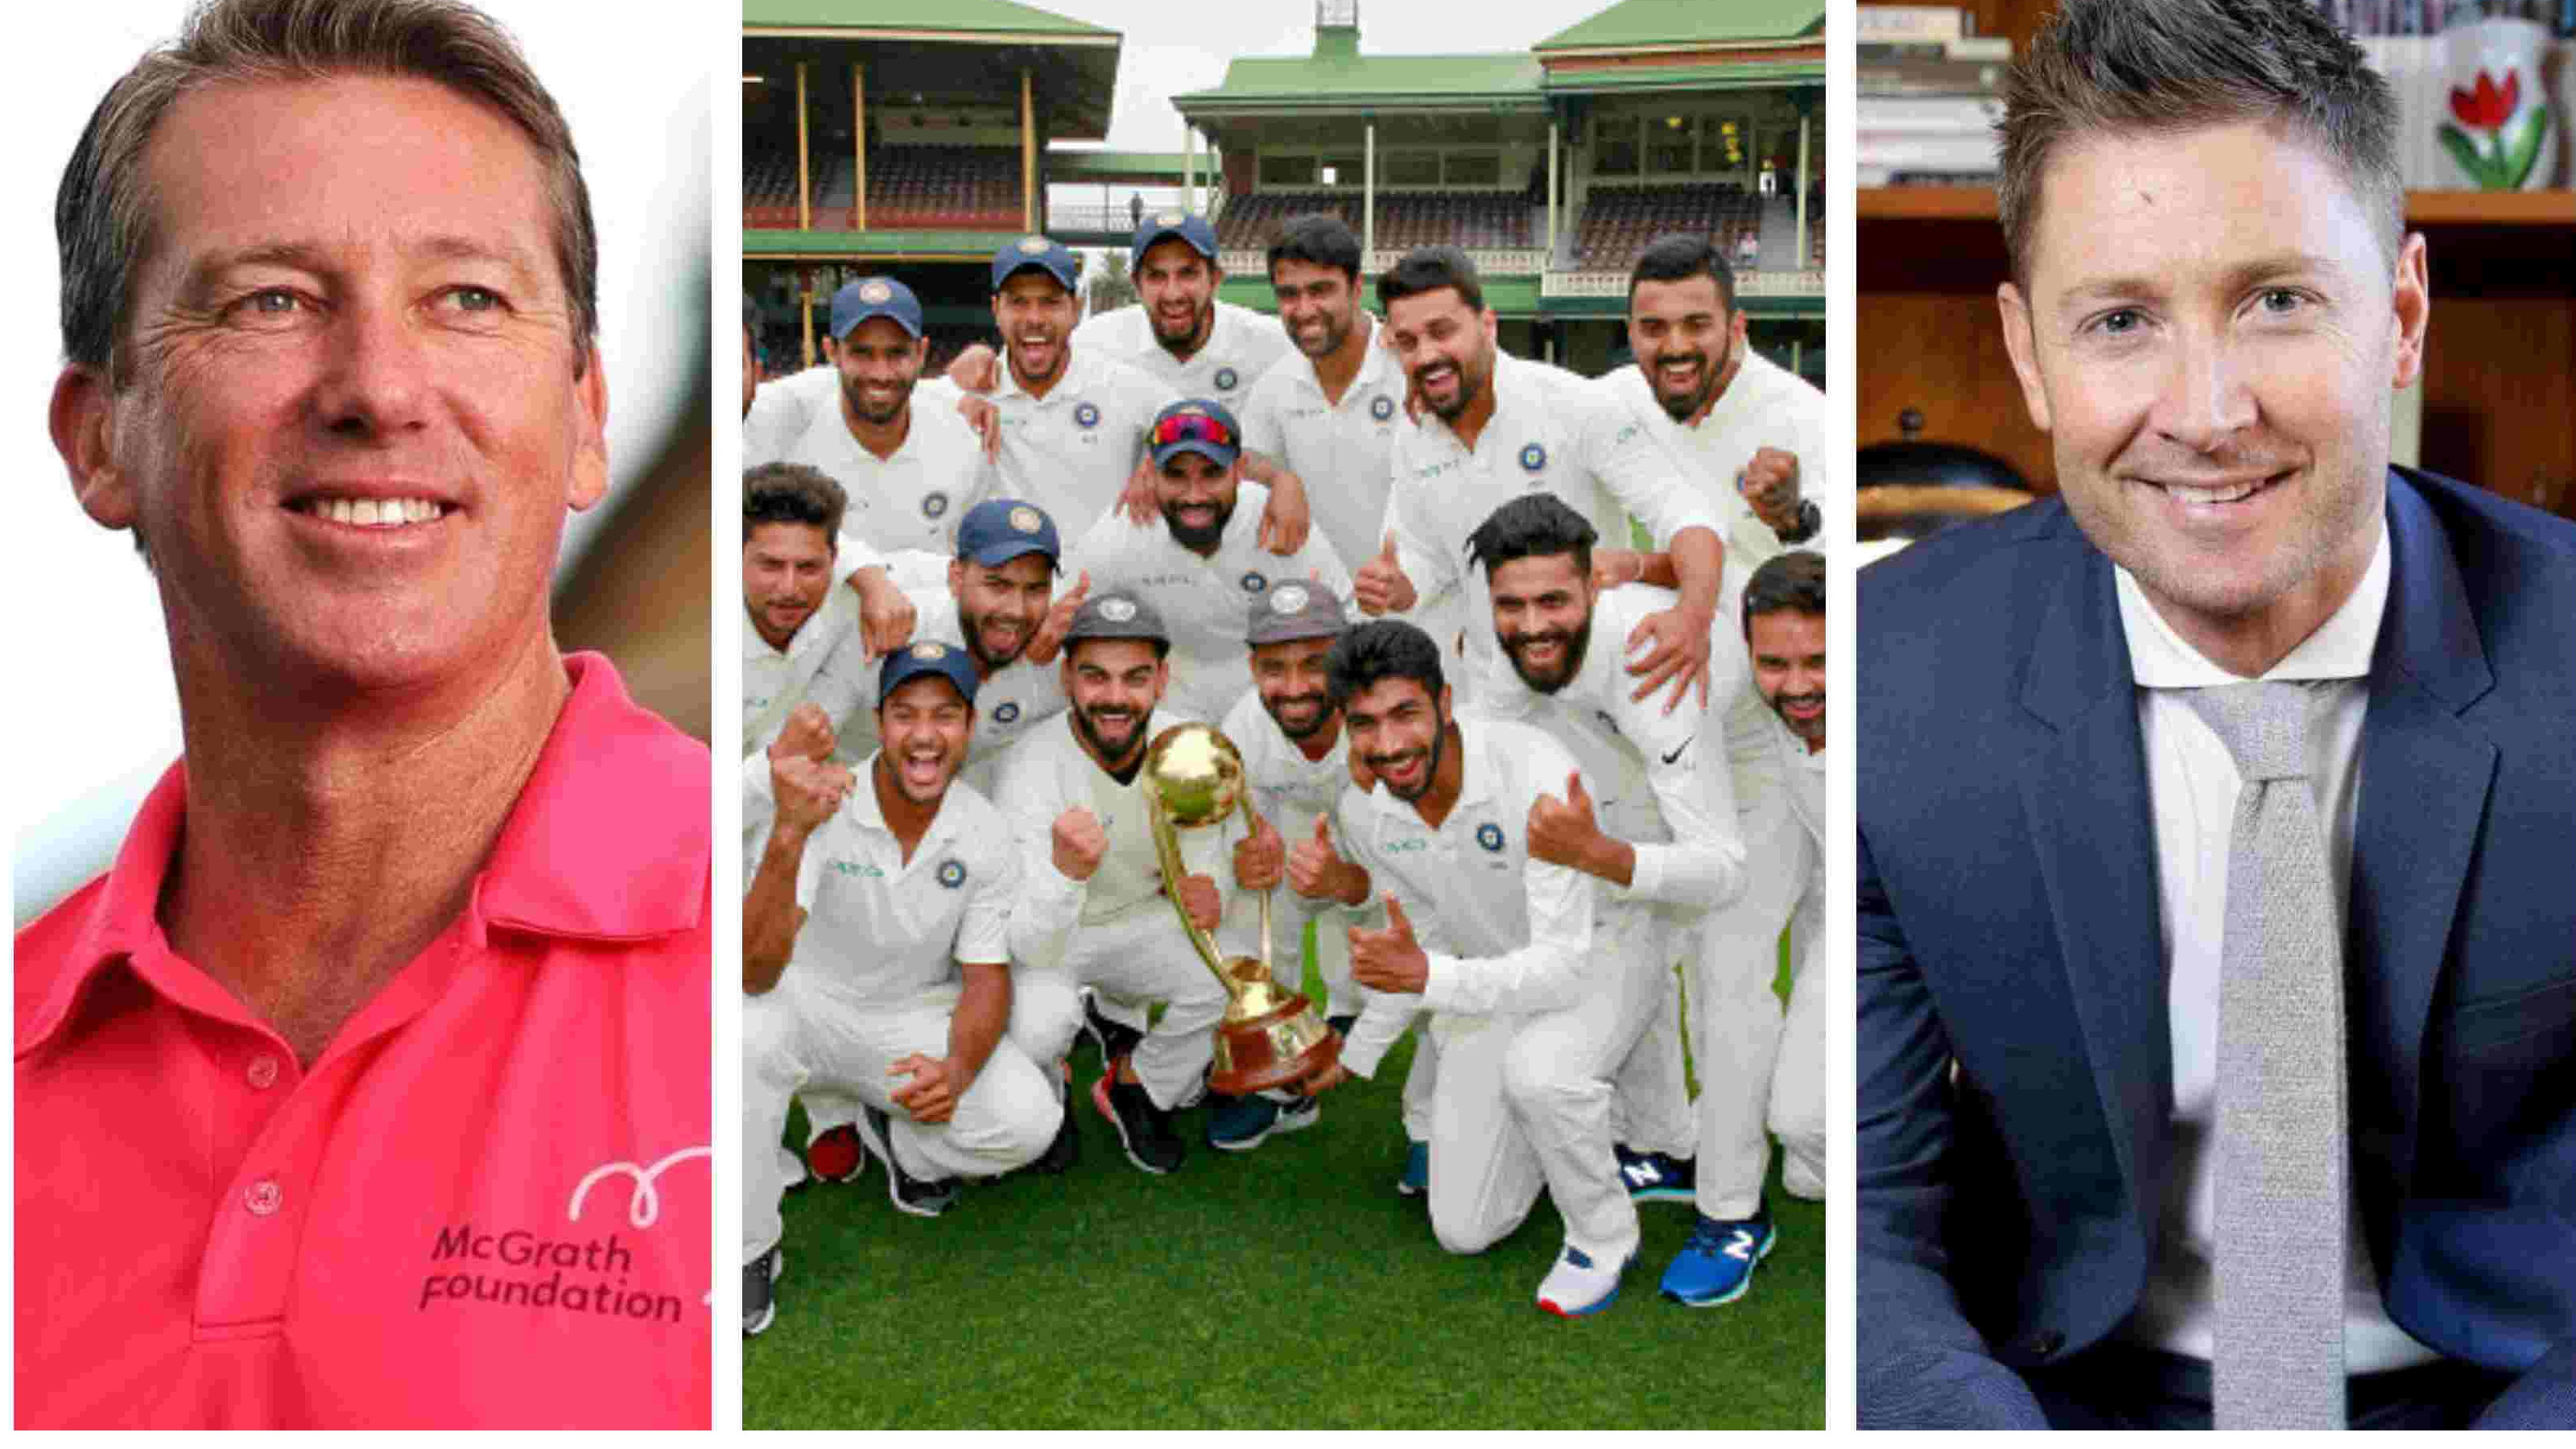 AUS v IND 2018-19: Australian cricket fraternity congratulates Team India on a historic Test series triumph down under